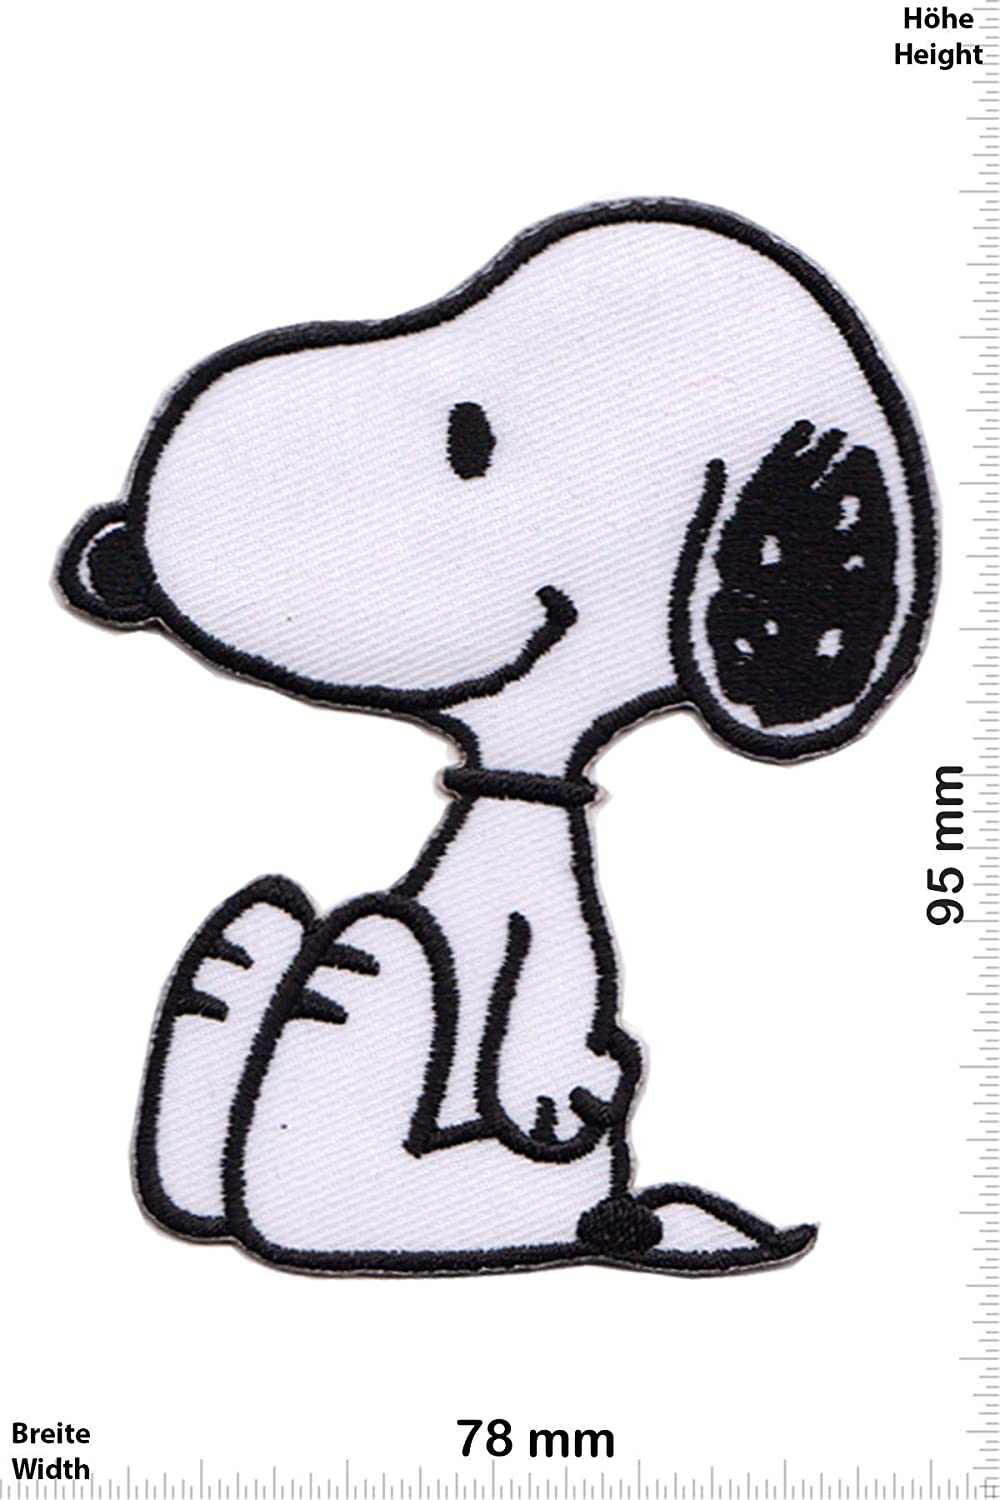 Iron on Applique Embroidery /Écusson brod/é Costume Cadeau- Give The Peanuts Sit Big -Cartoon -Snoppy -Snoopy Patch Snoopy